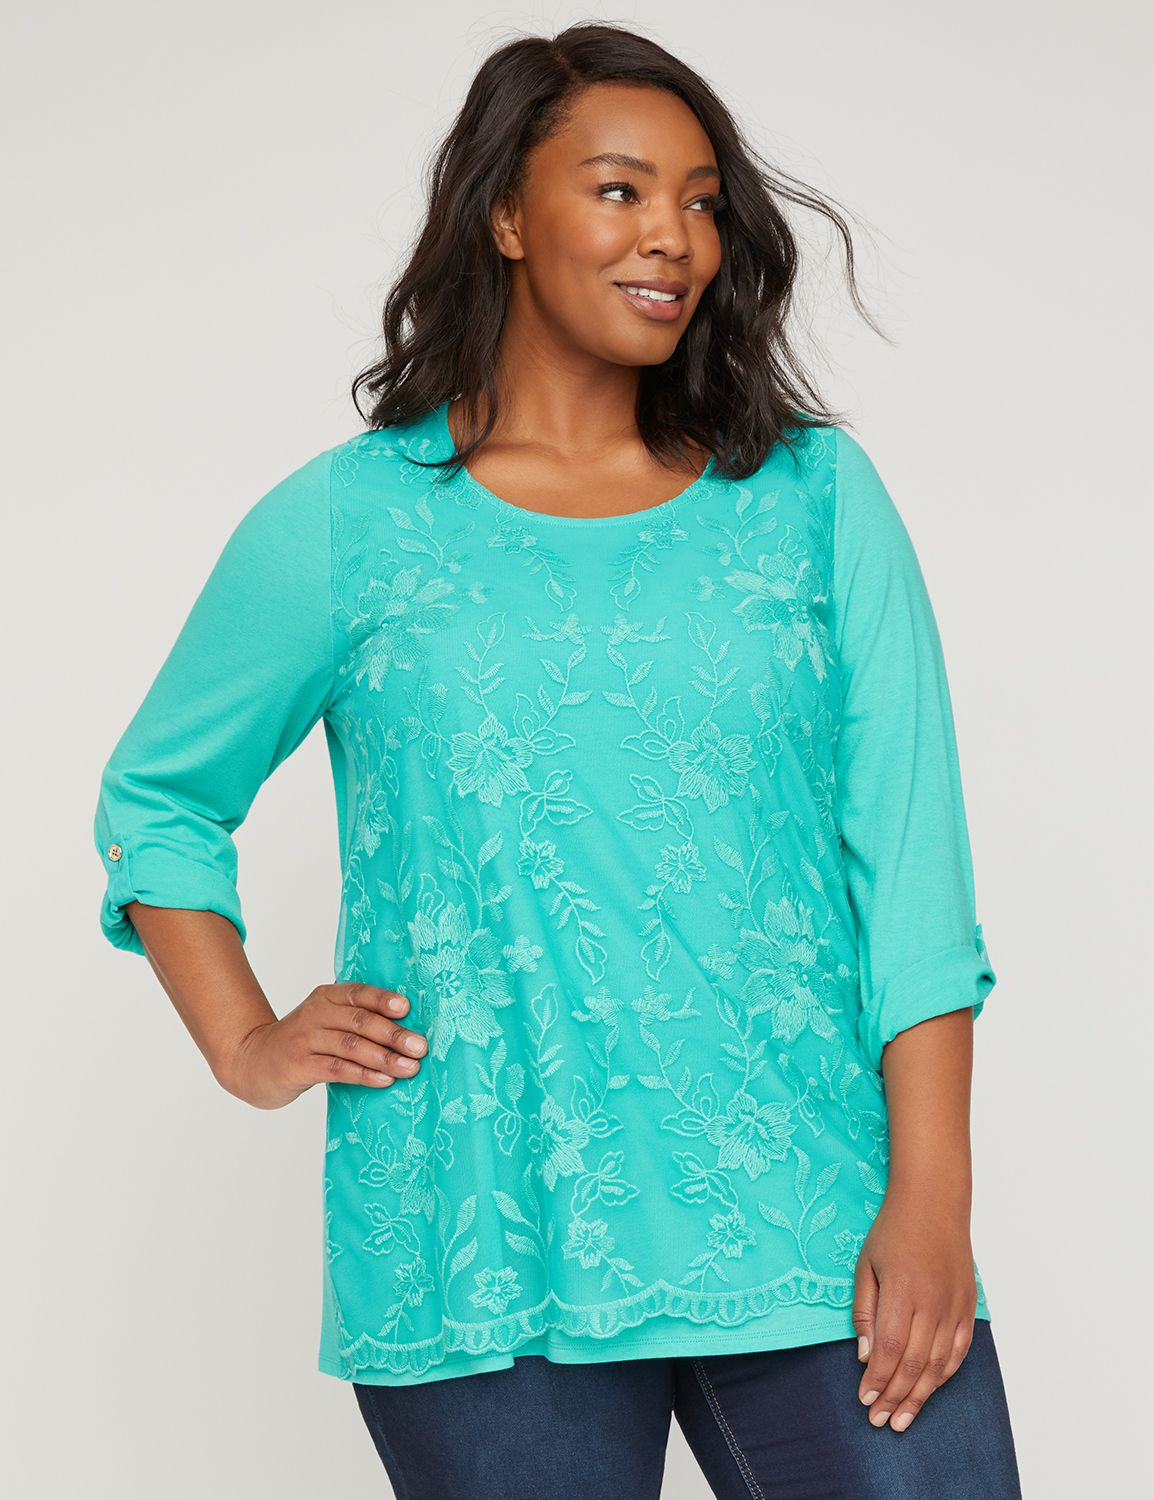 "A lightweight top in our favorite jersey knit featuring a mesh overlay along the front that's beautifully enhanced with embroidered lace. Scoop neck. Three-quarter sleeves with roll-tab cuffs. Item Number #315089, 100% Polyester, Machine Wash, Imported Plus Size Top, Length: 31"", Petite Length: 29"" , Plus Sizes 0X-5X, Petite Plus Sizes 0XWP-3XWP, Catherines Plus Sizes"